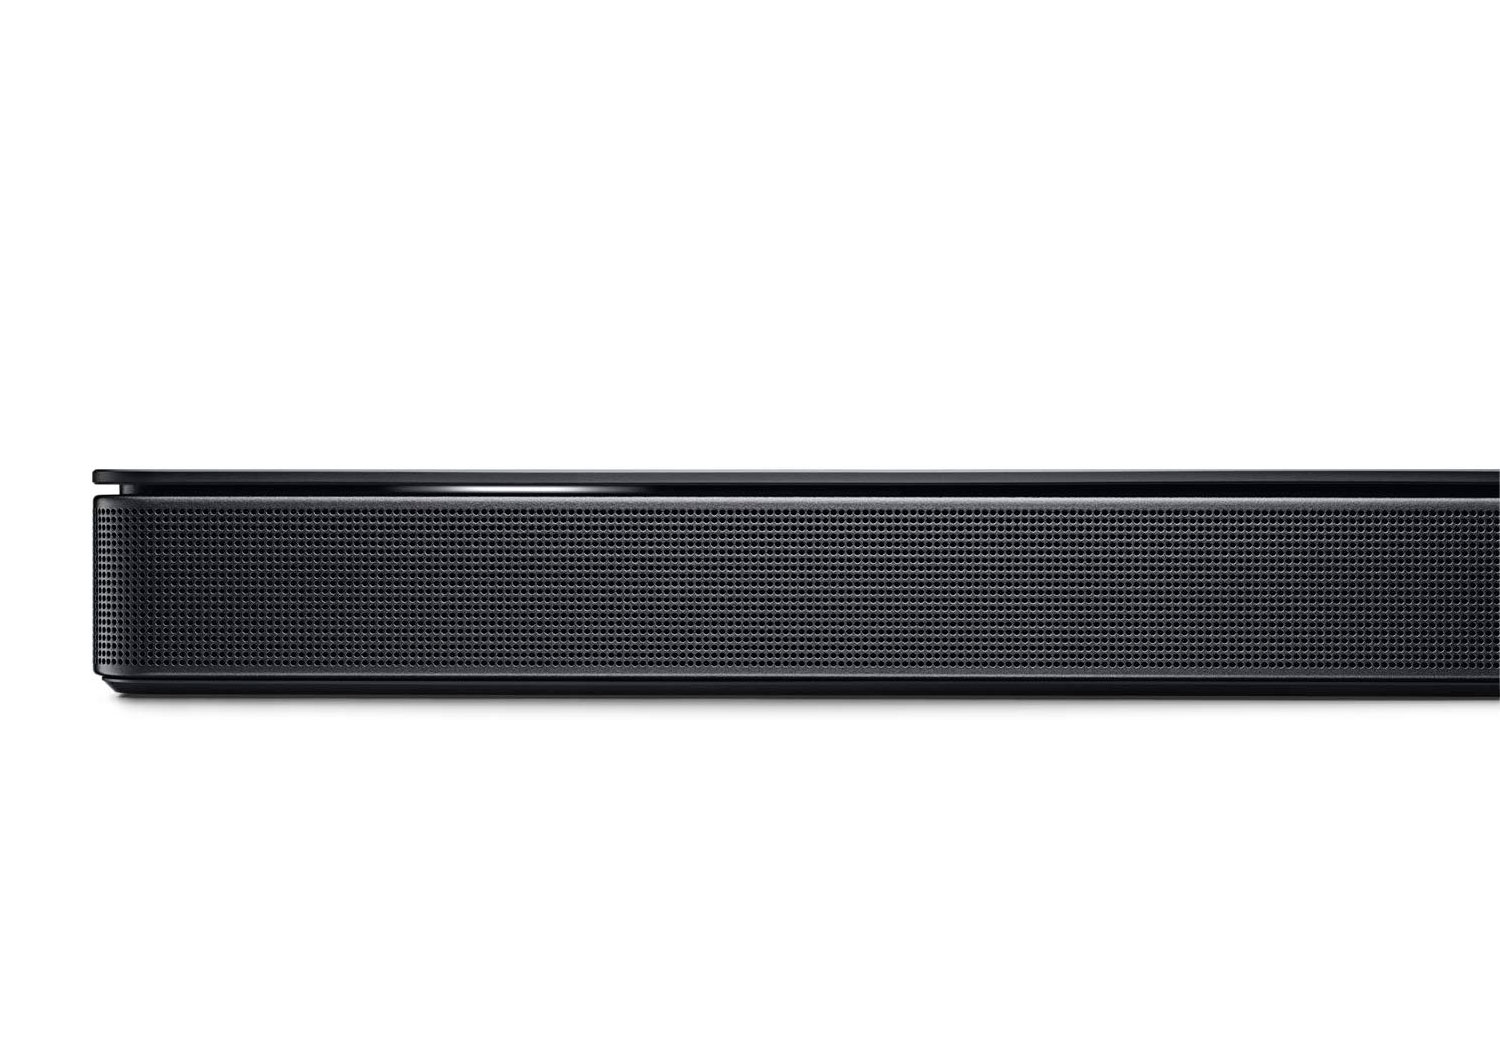 Soundbar-500 + BASS Module 500 + Surround Speakers (Black)